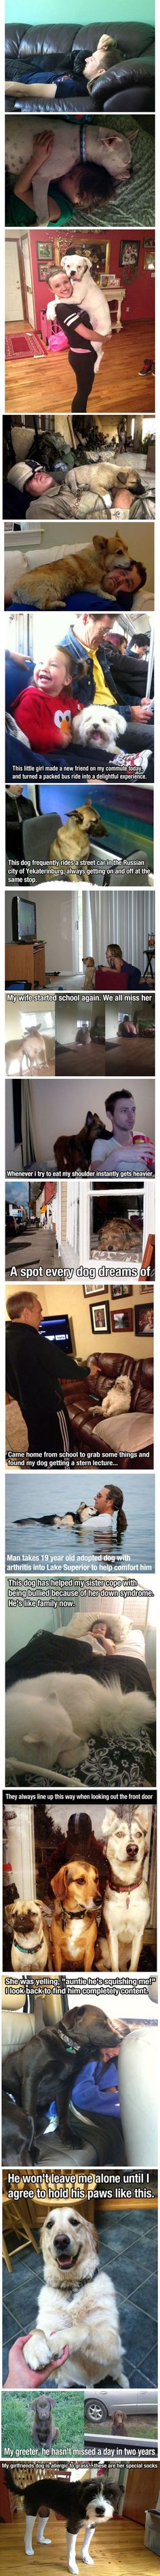 Proof that Dogs are awesome